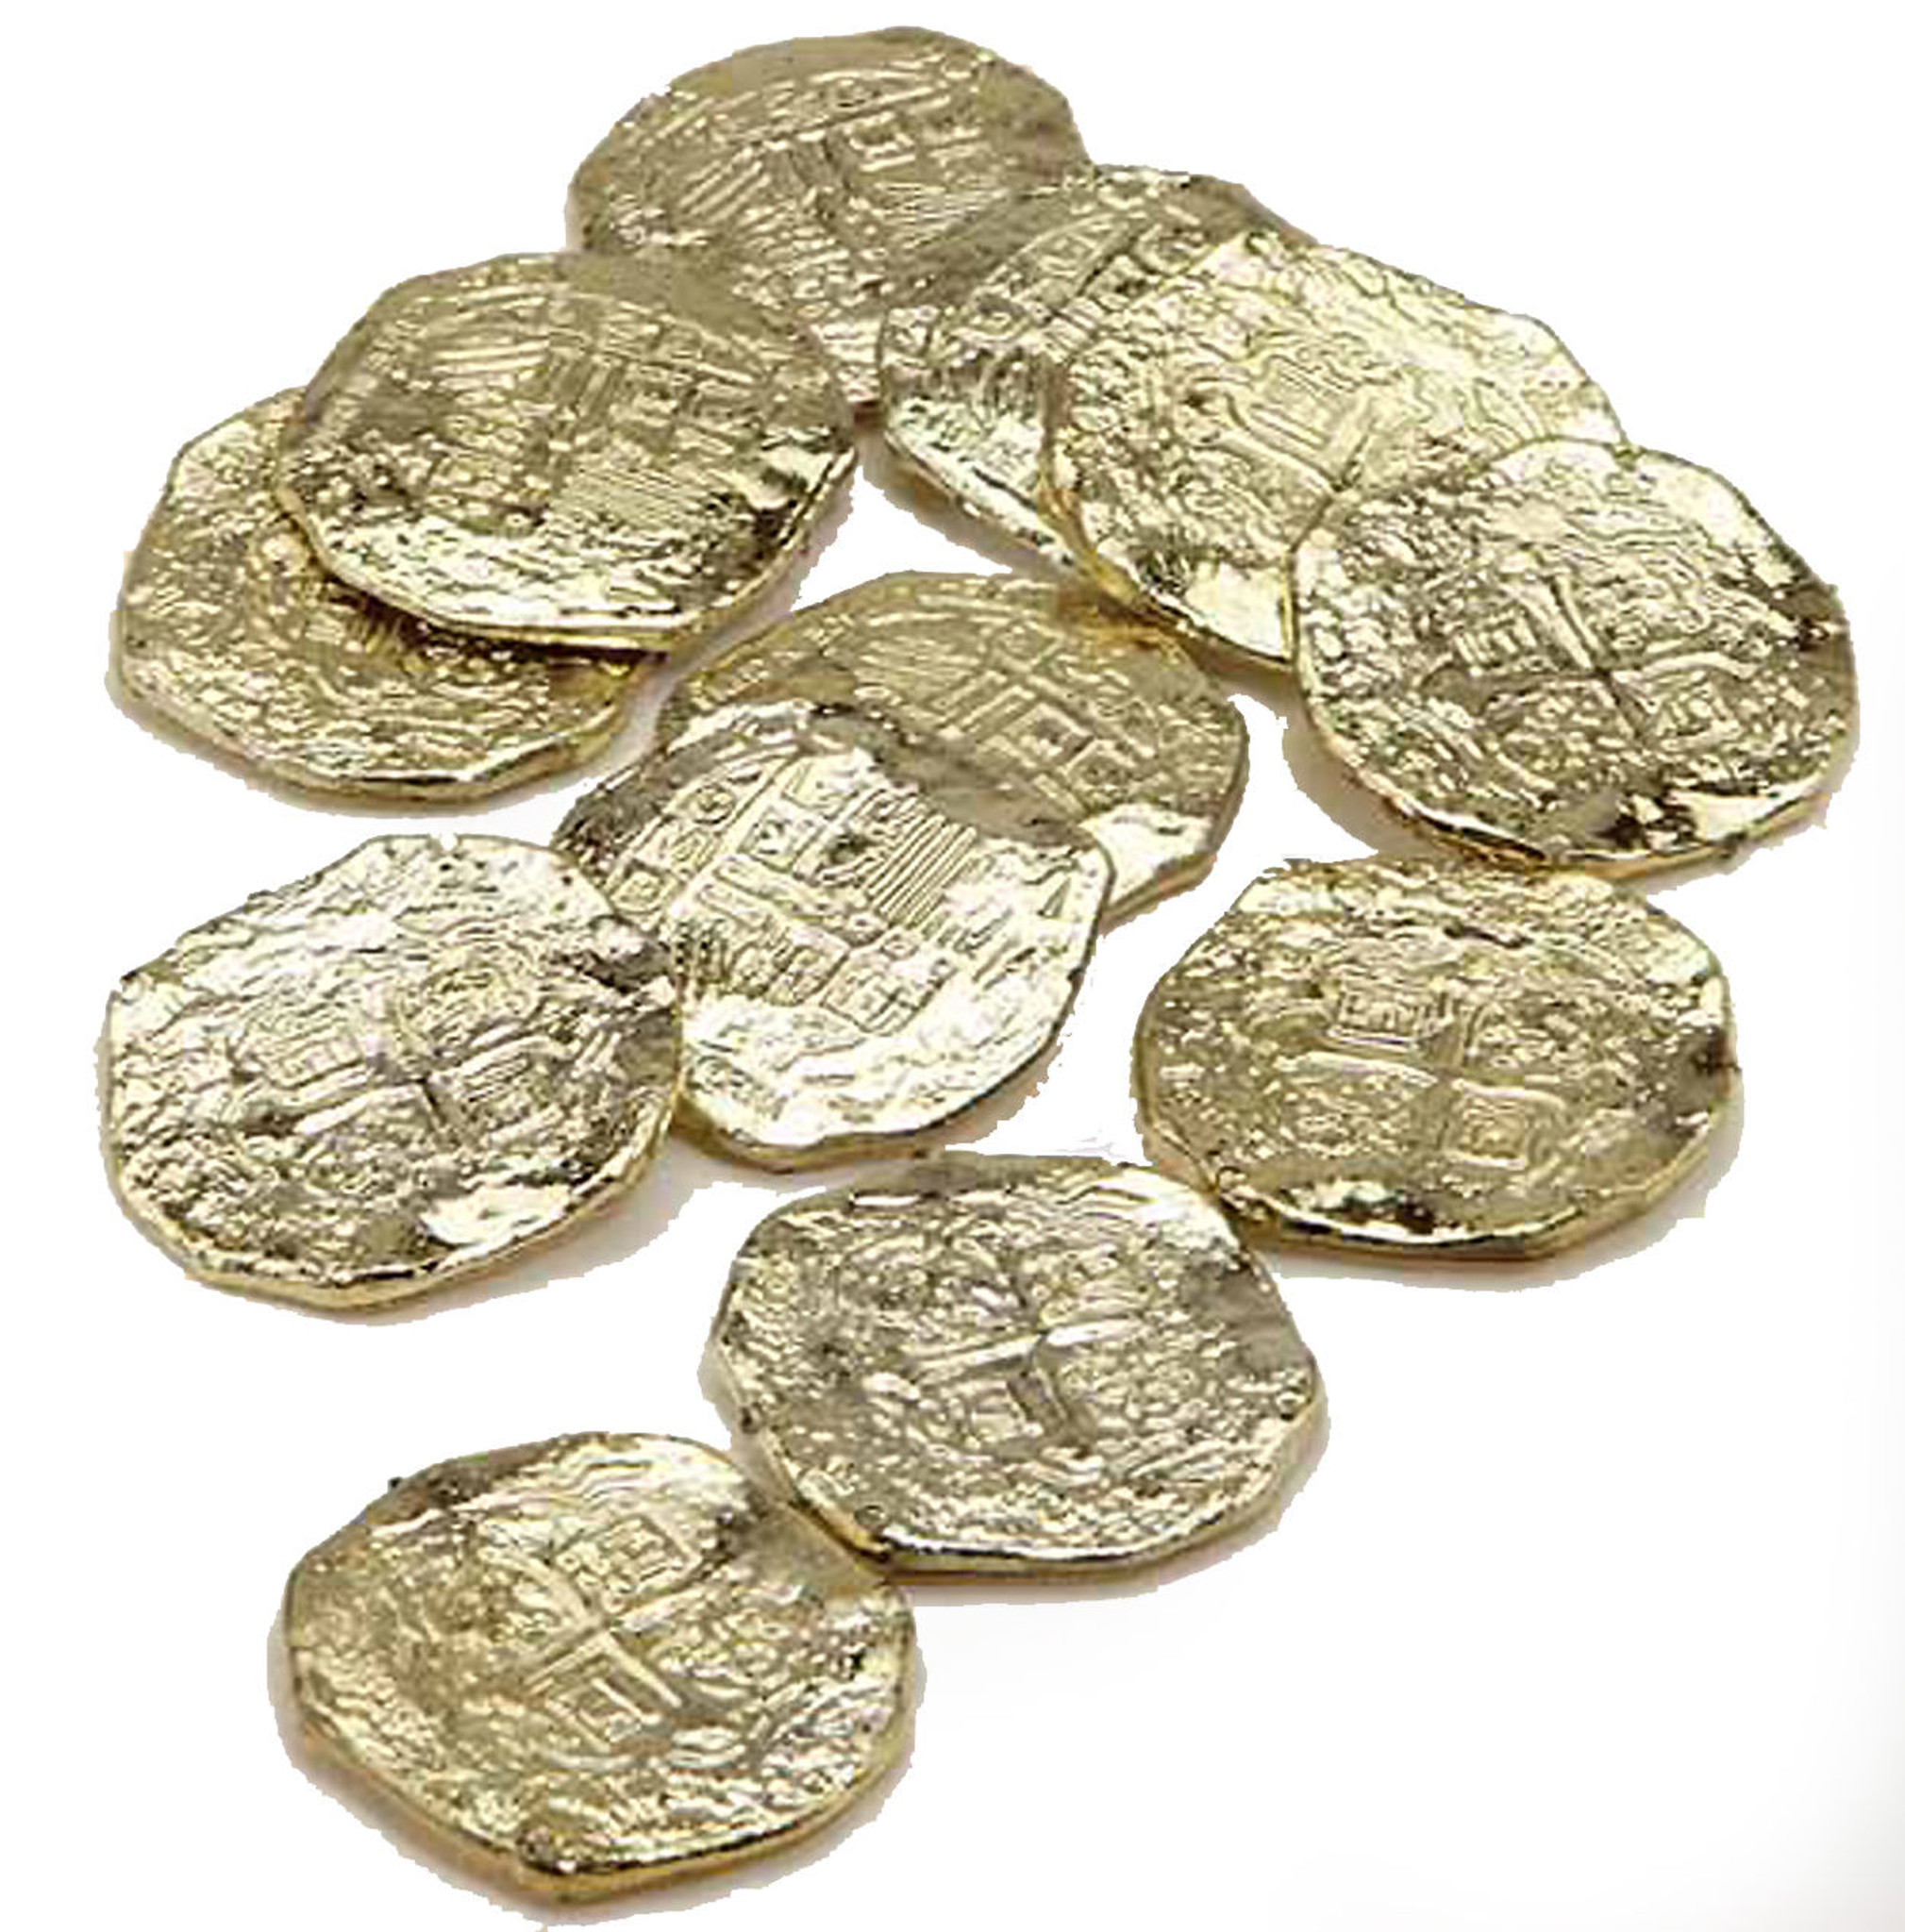 Pirate Gold Doubloons 12 pc Toy Coins